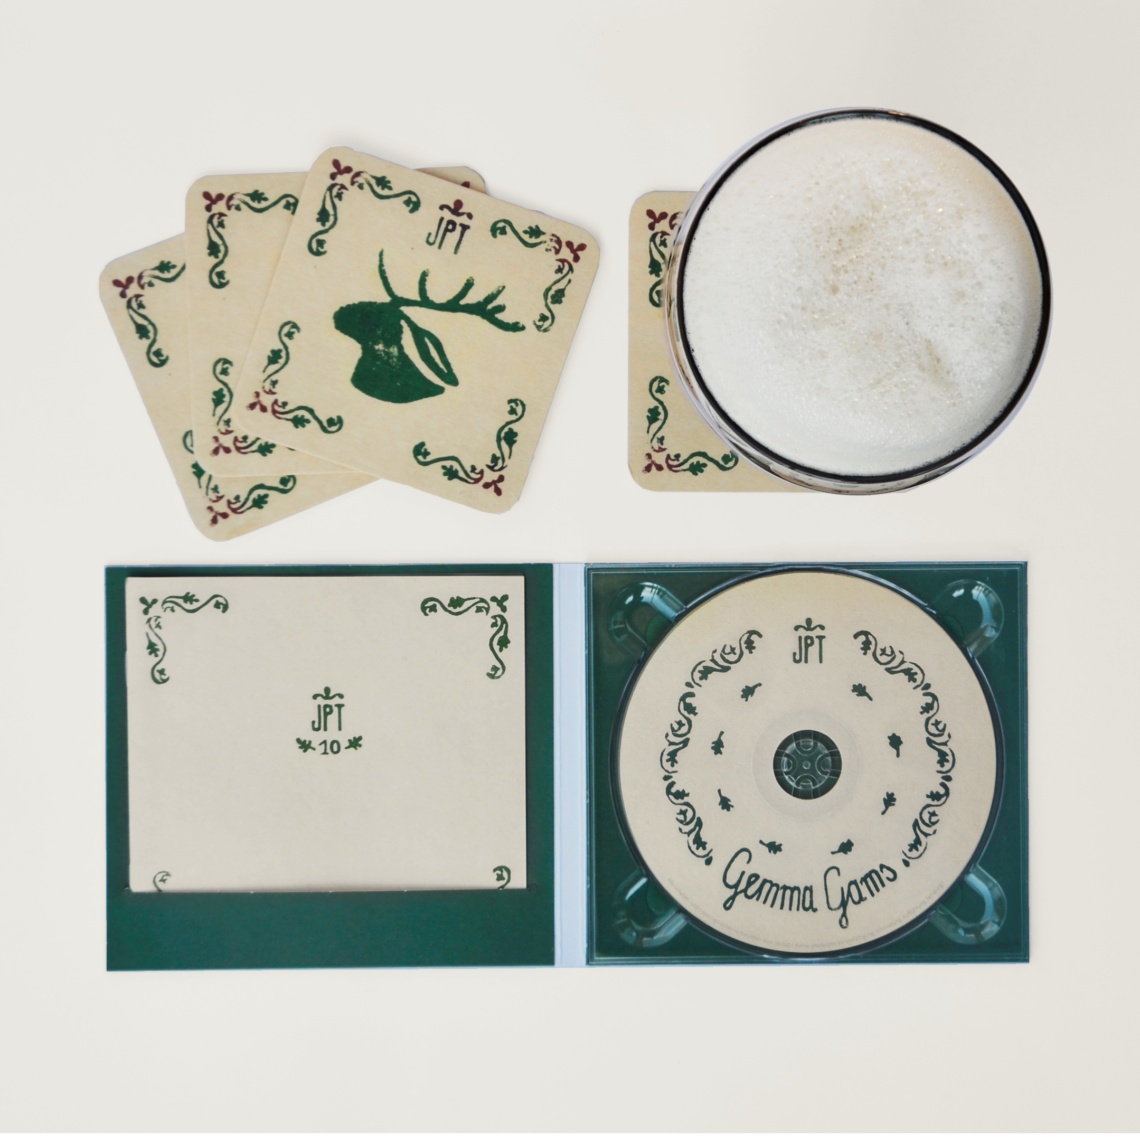 disc, booklet, beer mats